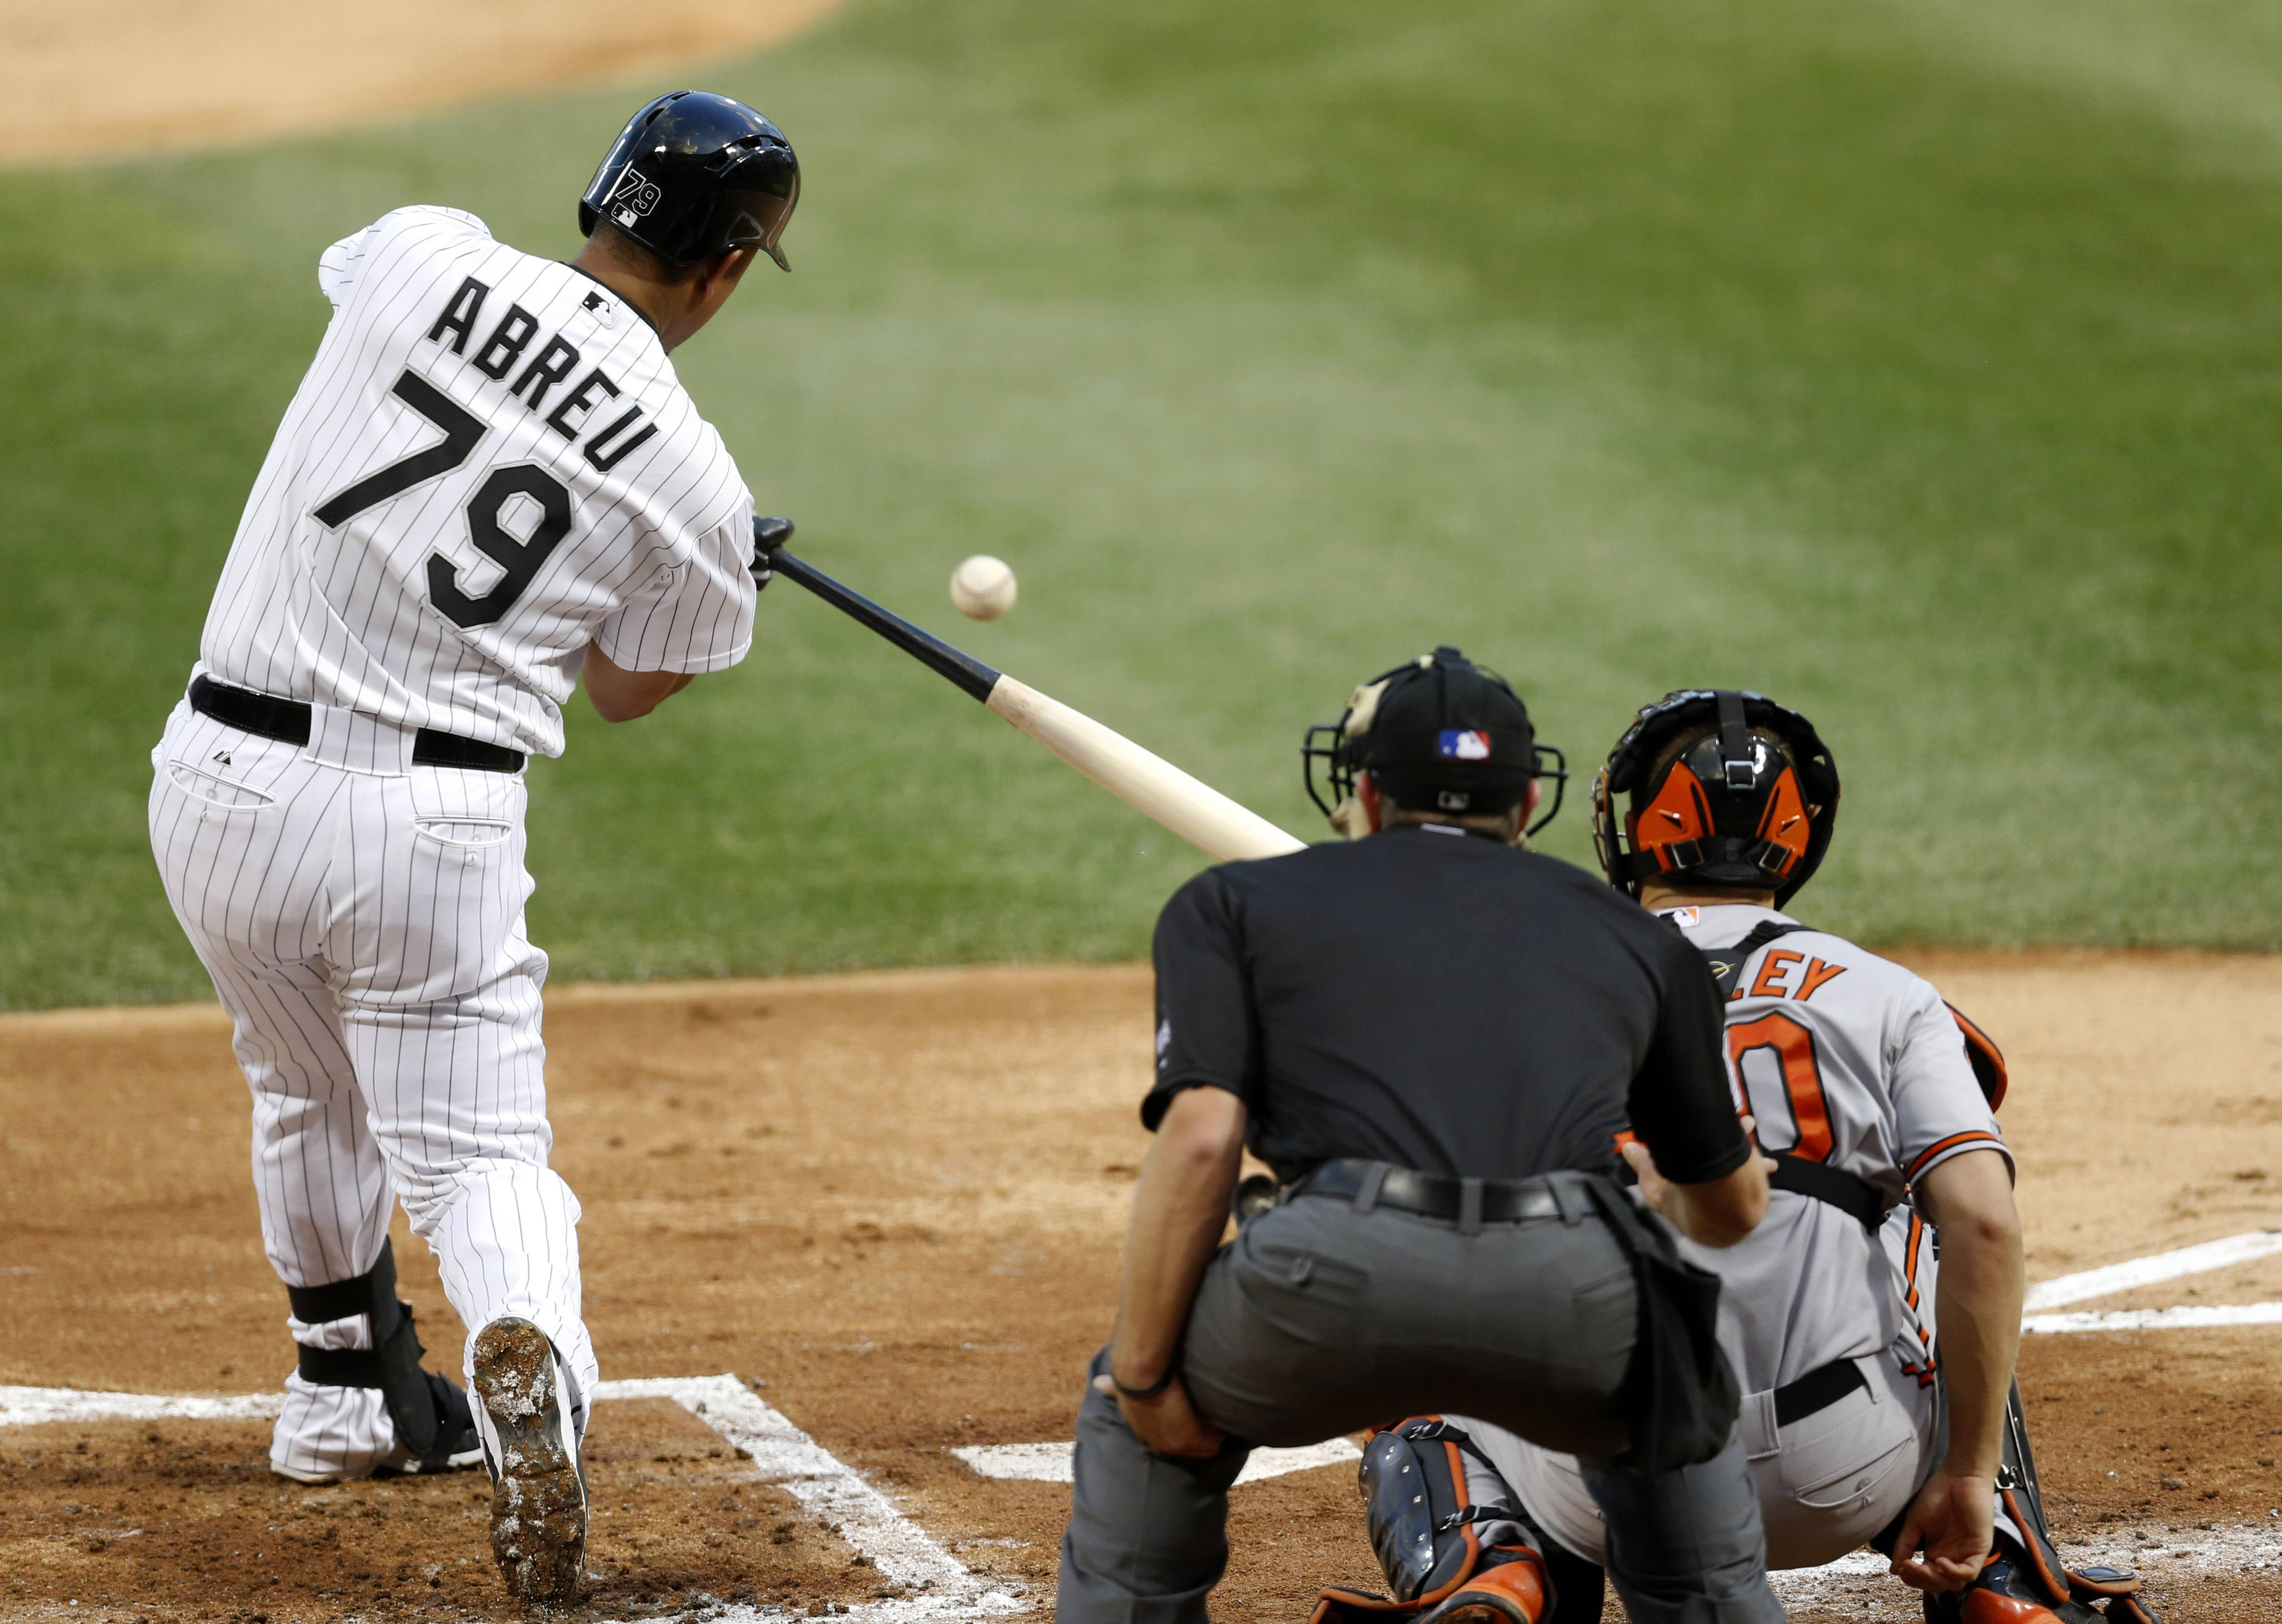 The White Sox's Jose Abreu hits a home run off Baltimore Orioles starting pitcher Chris Tillman during Tuesday's game at U.S. Cellular Field.